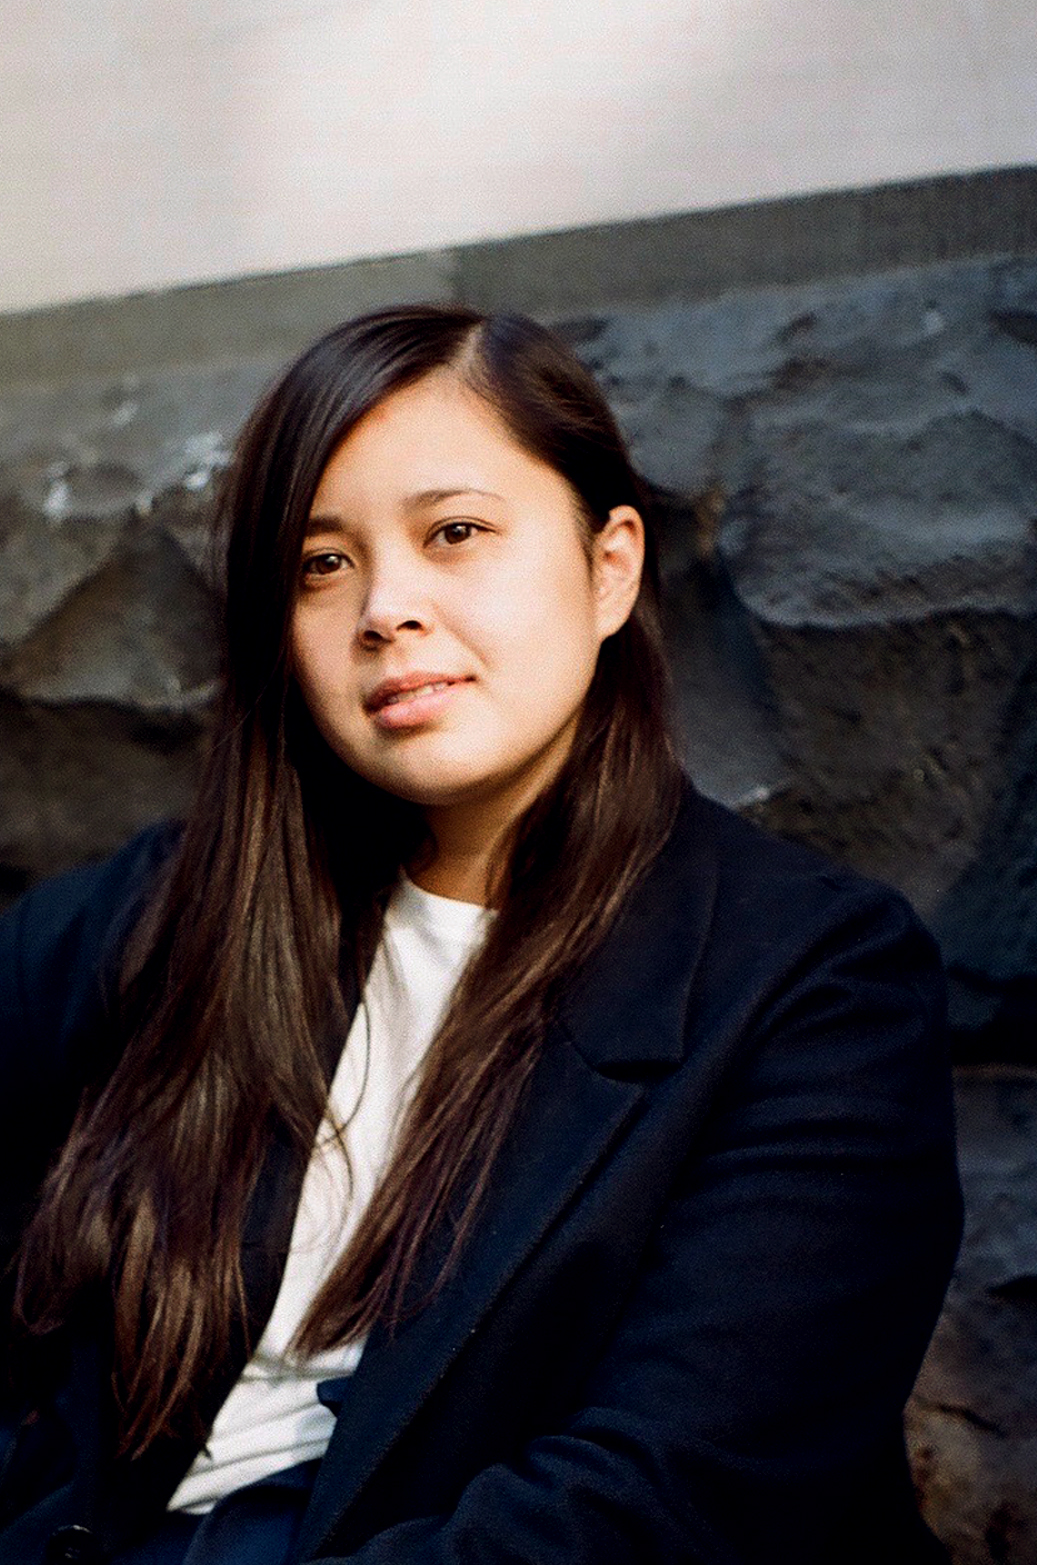 Photograph of writer Leah Jing McIntosh